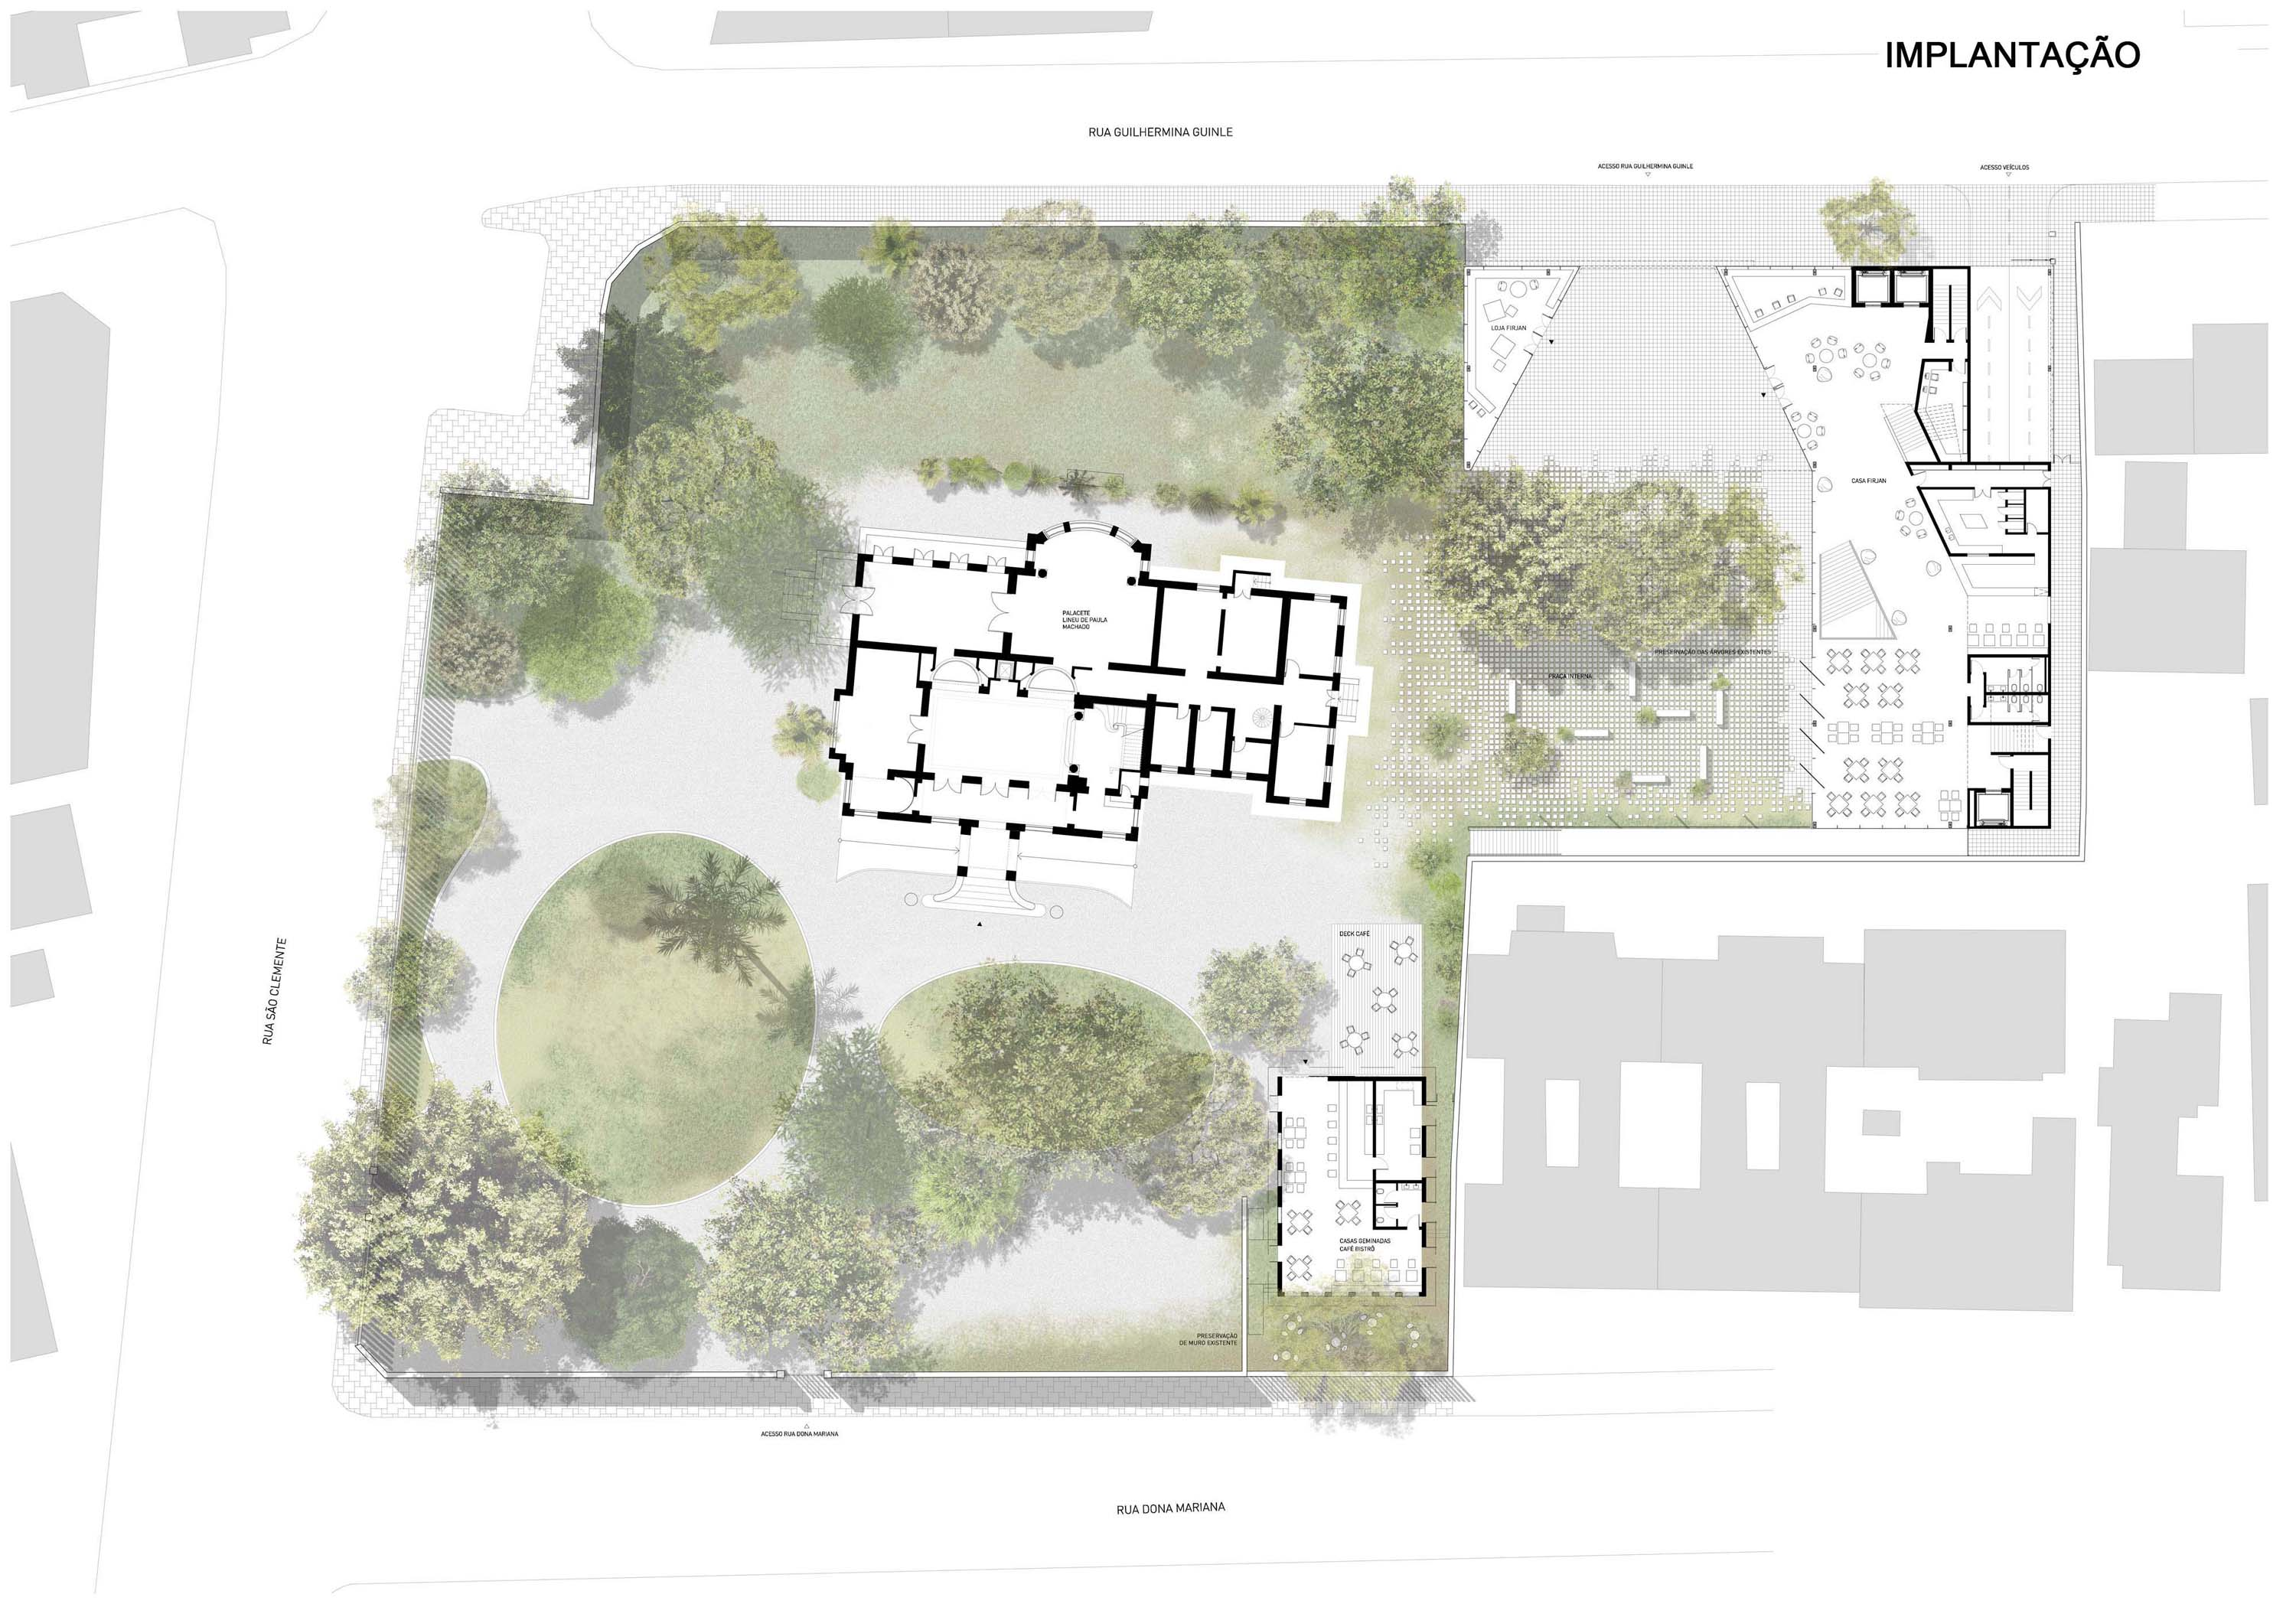 1000 images about site plan sketches on pinterest site plans sketches and markers Site plan design